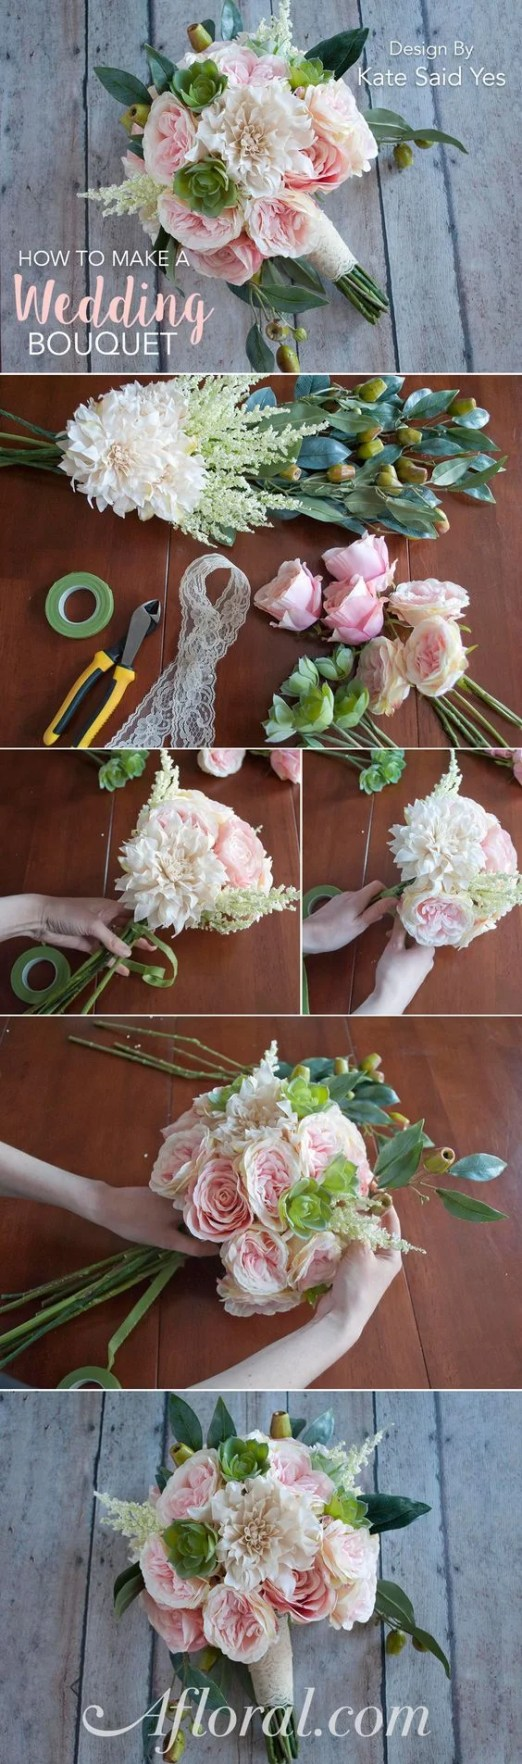 This guide for a DIY wedding bouquet is so AWESOME! I never thought of making my own until this!